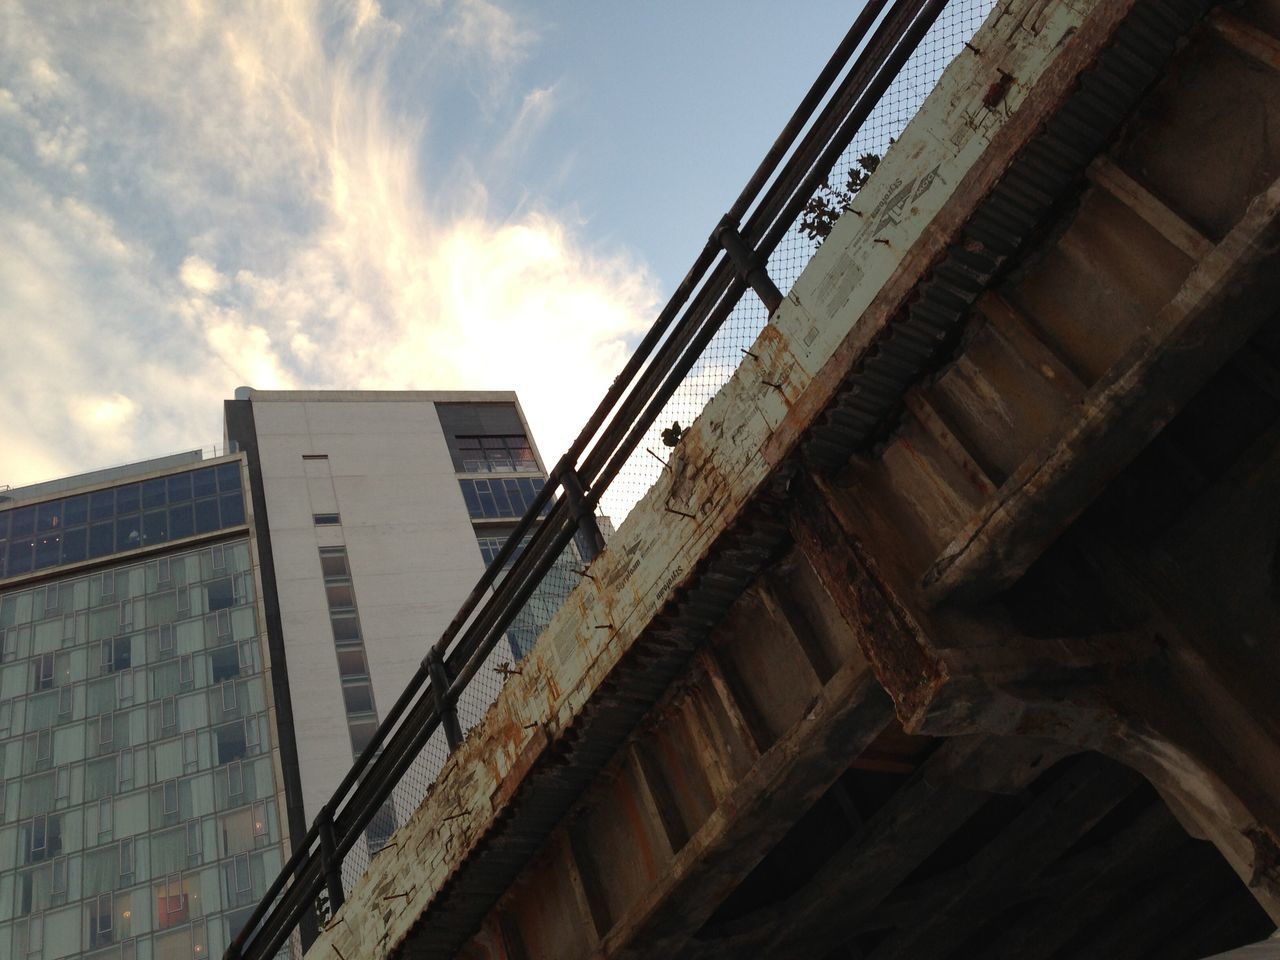 architecture, built structure, low angle view, building exterior, sky, no people, outdoors, cloud - sky, day, nature, city